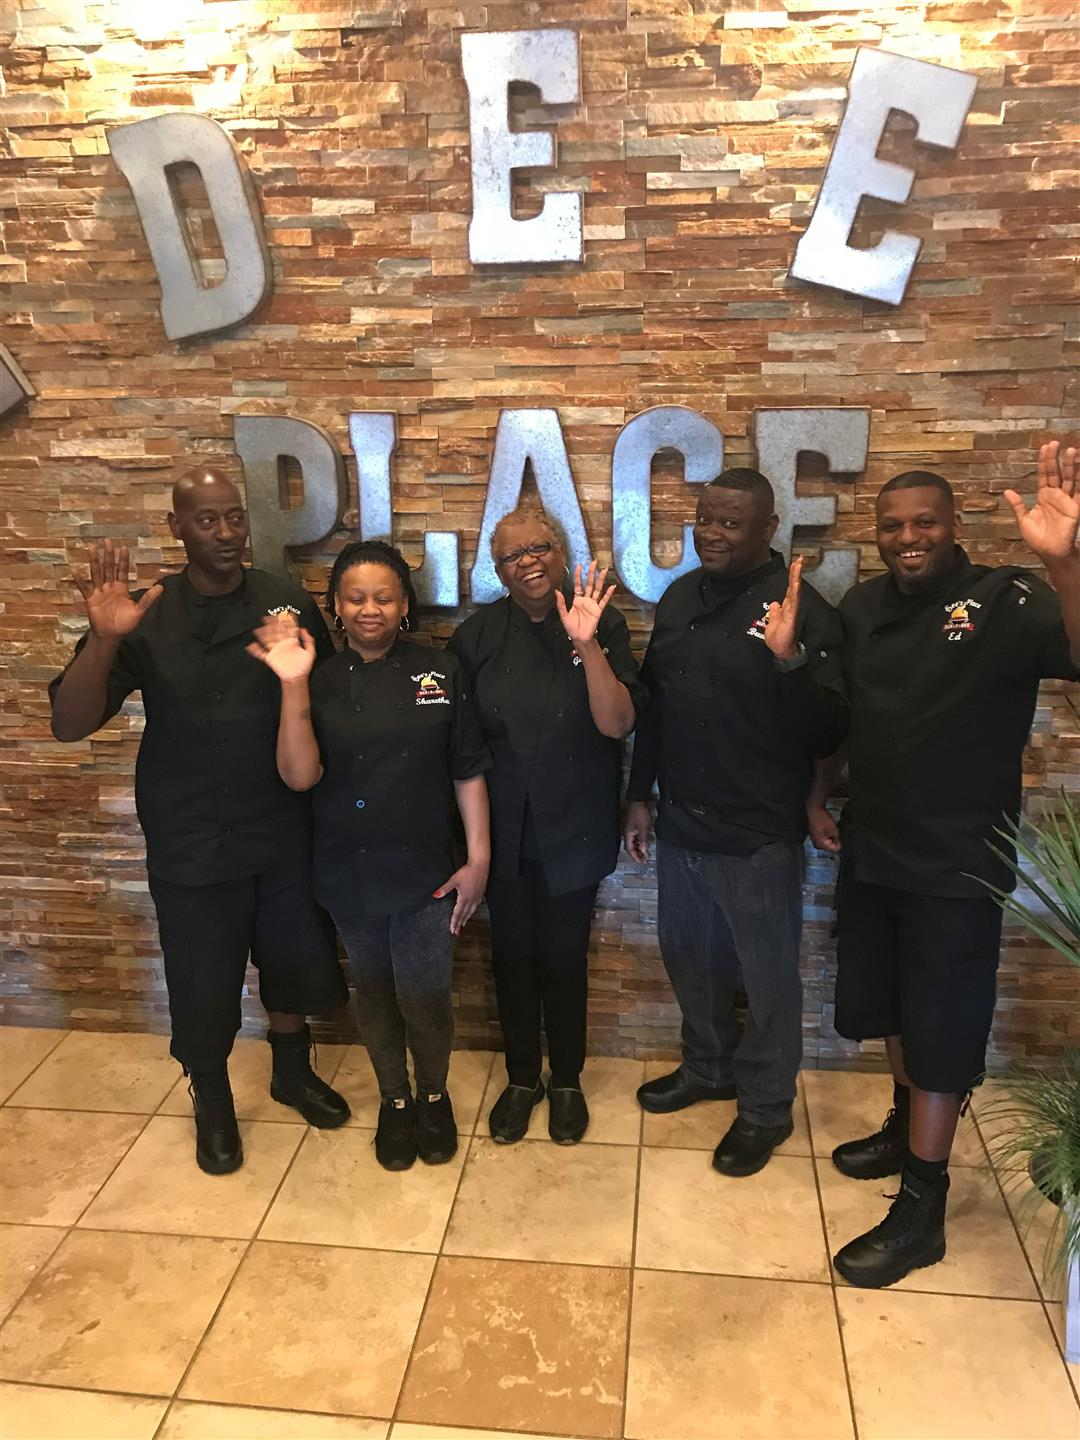 5 staff members in black edee's place uniforms waving and smiling in front of the interior brick wall that says Edee's Place